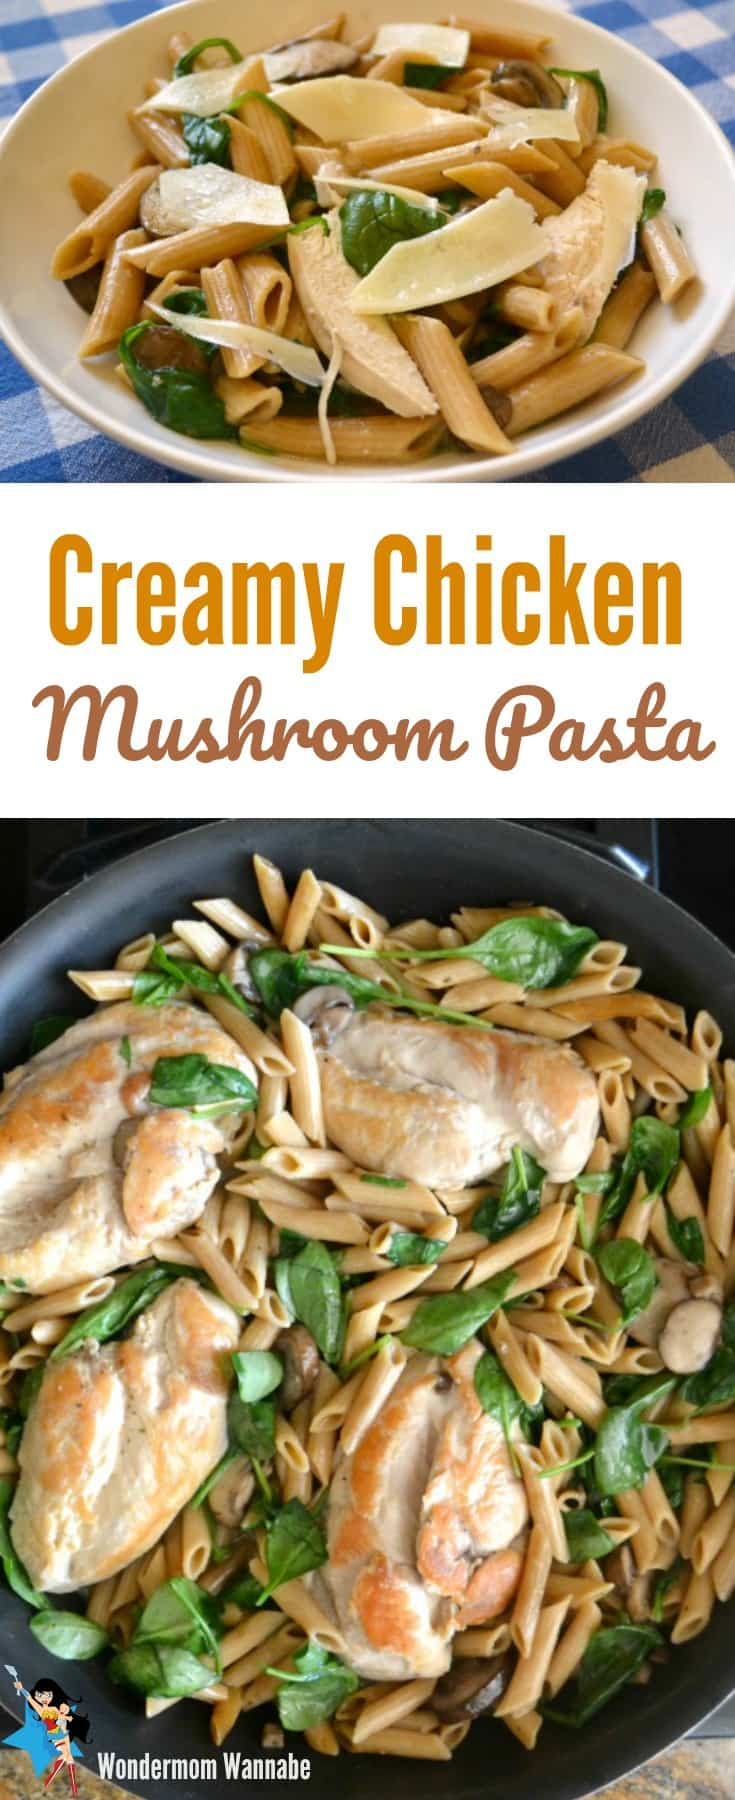 This one pot creamy chicken mushroom pasta is a fast and easy meal for busy weeknights that tastes like you spent hours in the kitchen.